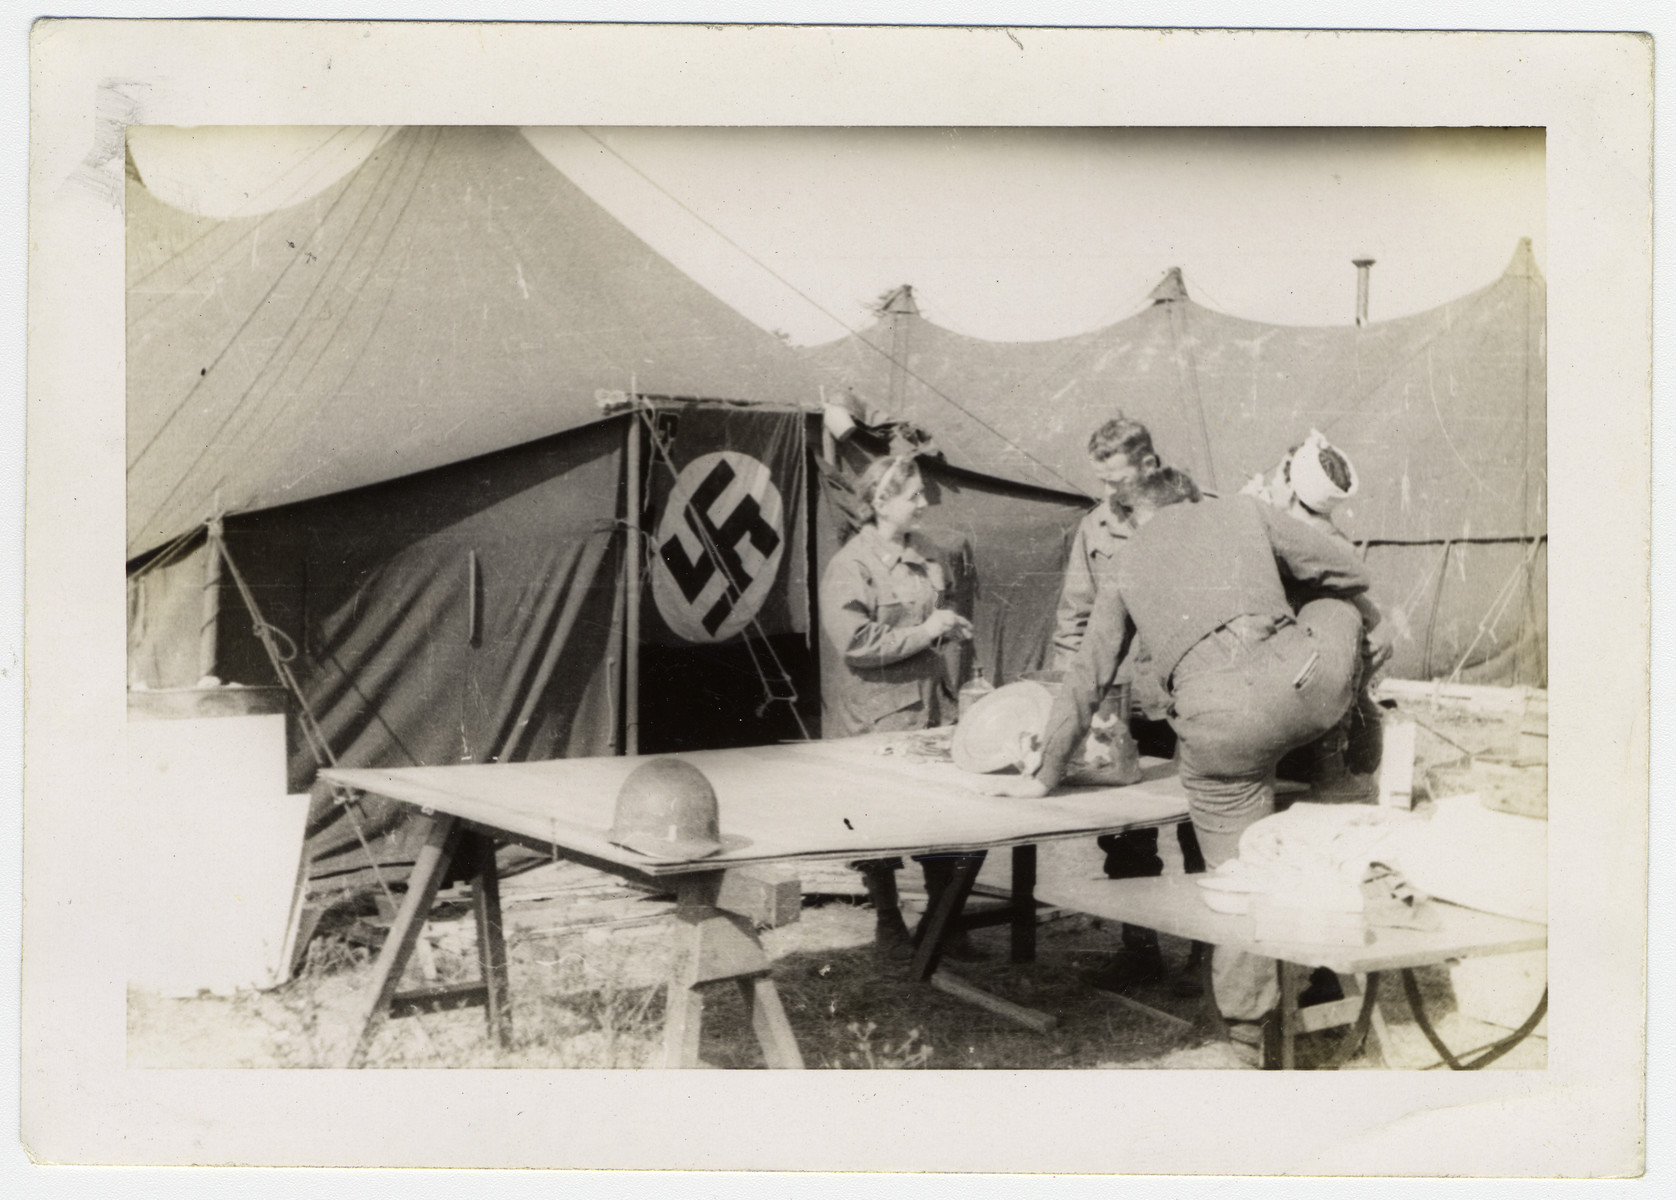 Group of American soldiers congregate in front of a tent displaying a Nazi flag as a door.   Original caption reads:  Nazi flag makes a good tent flap.    Heading above photographs:  The 120th set up in suburban Race Track near Frankfurt a/m April 5-15.